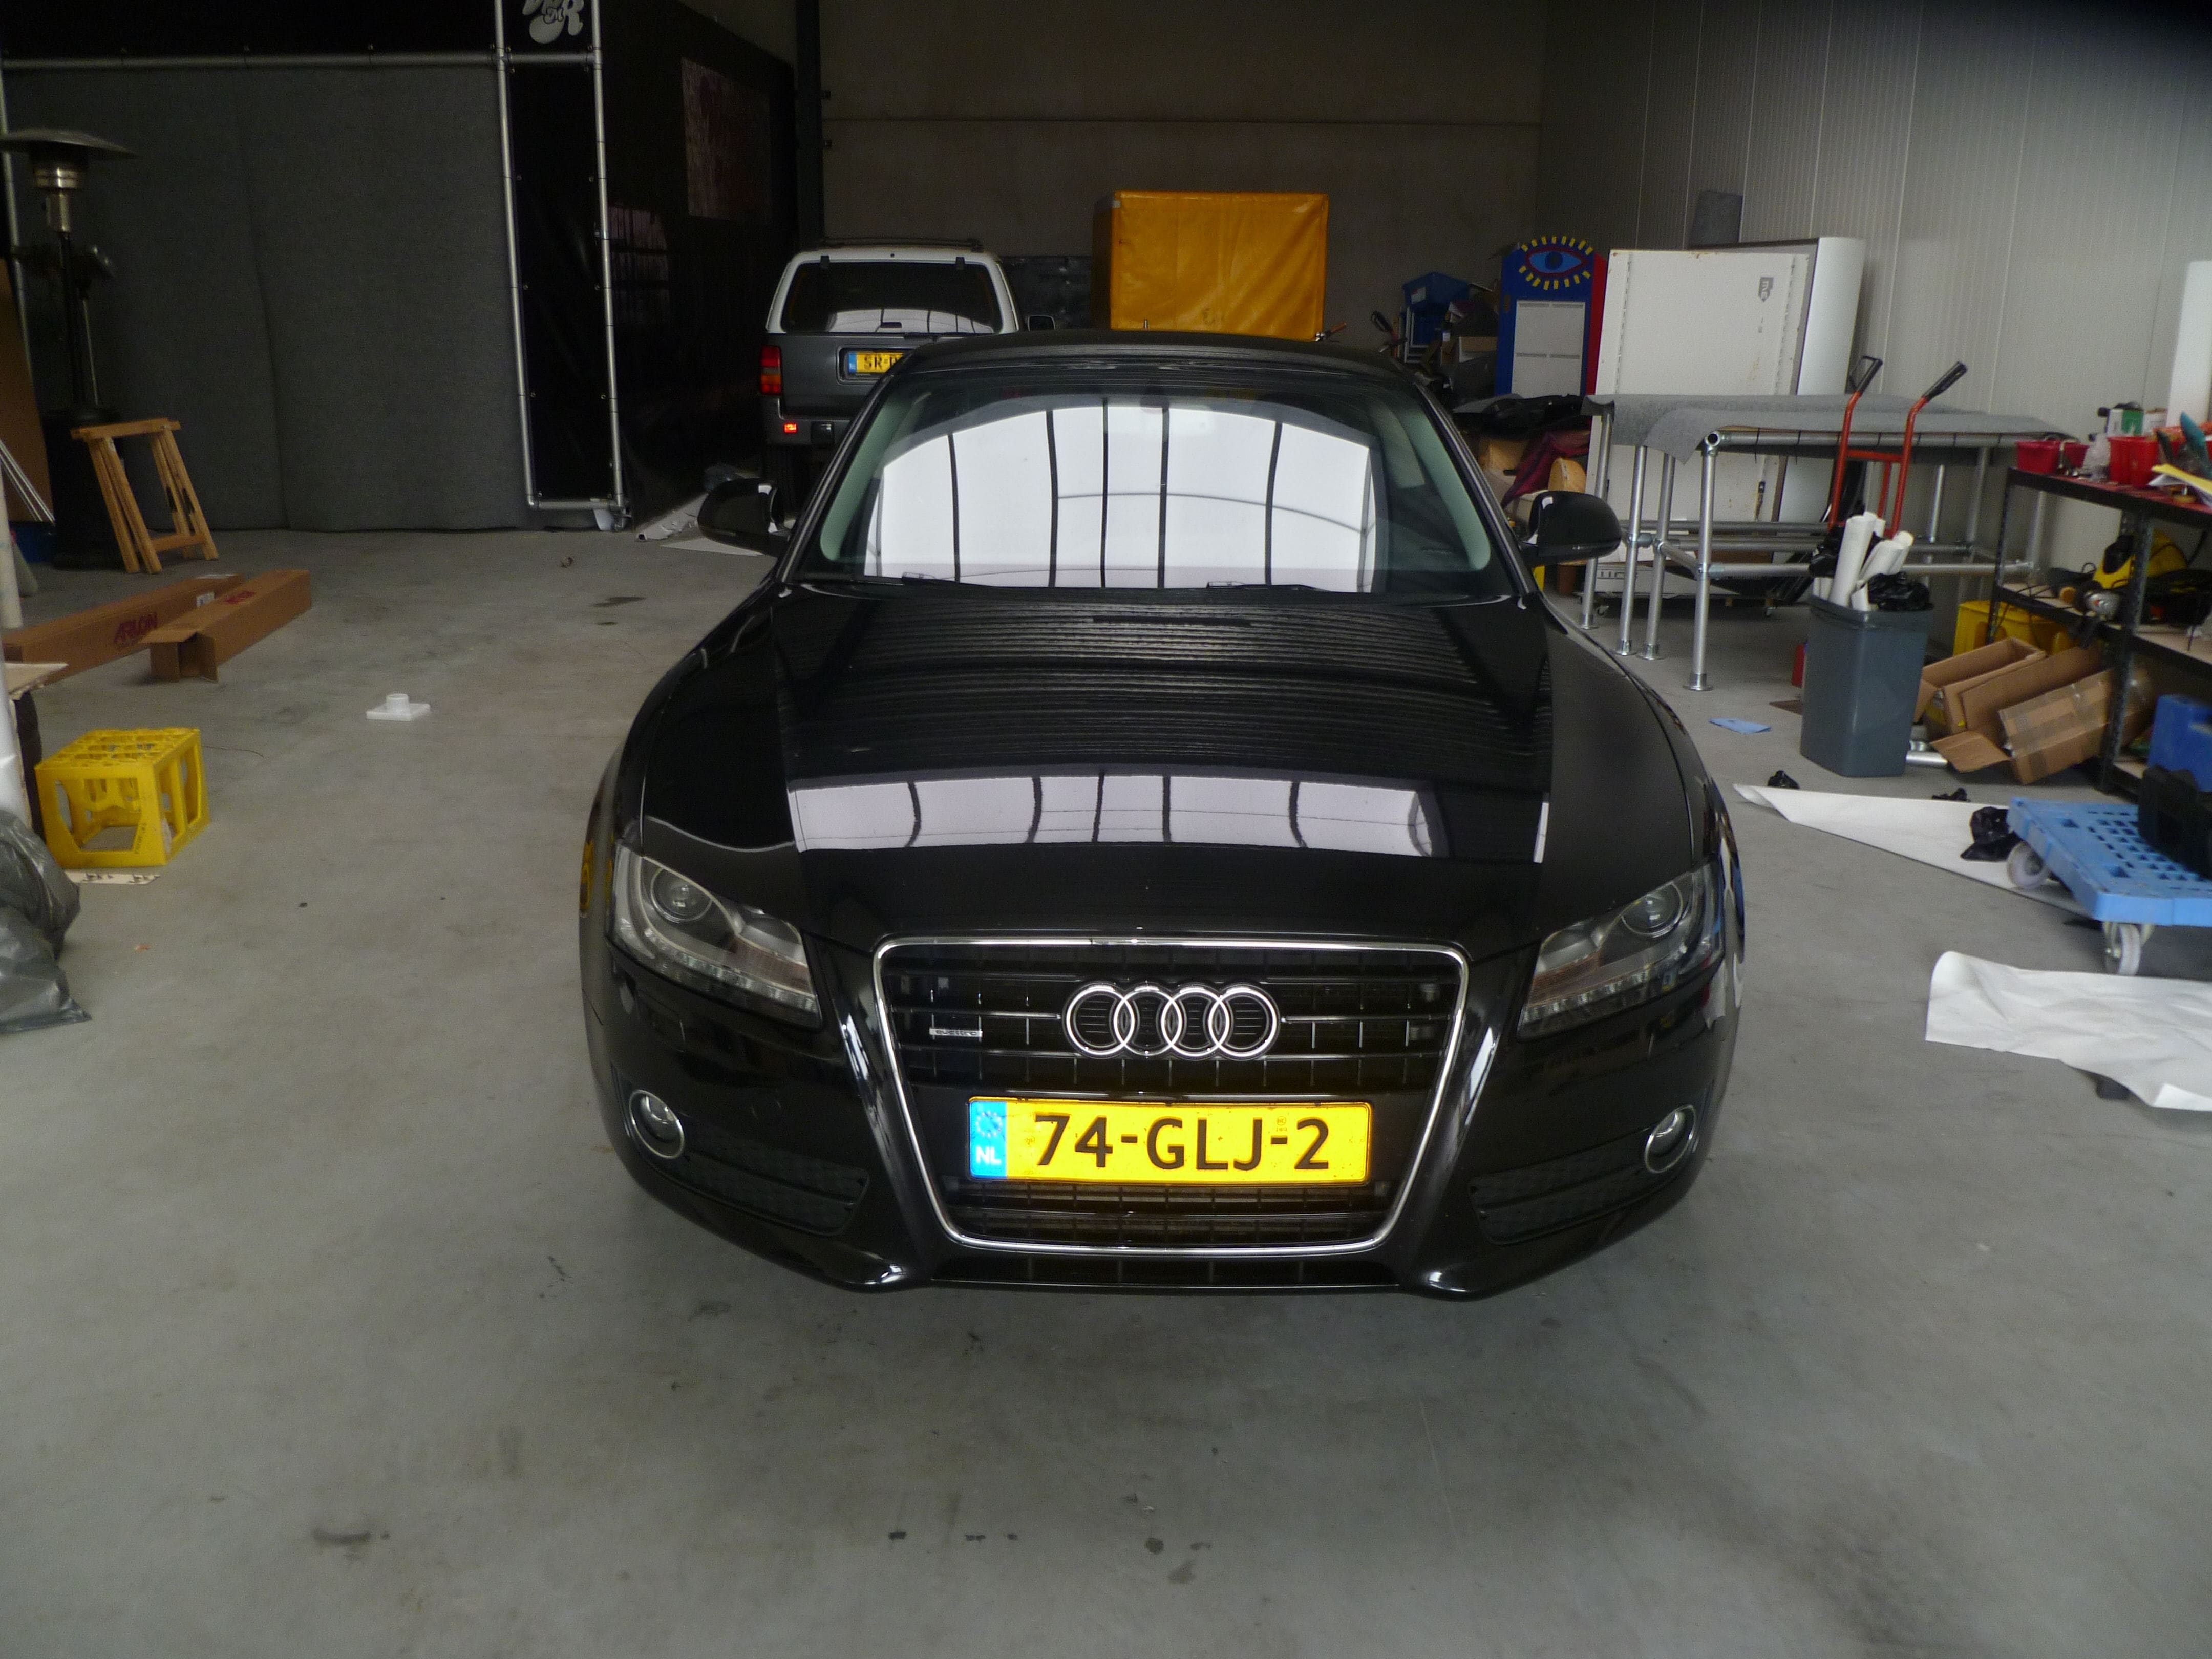 Audi A5 coupe met Metallic Witte Wrap, Carwrapping door Wrapmyride.nu Foto-nr:4670, ©2020